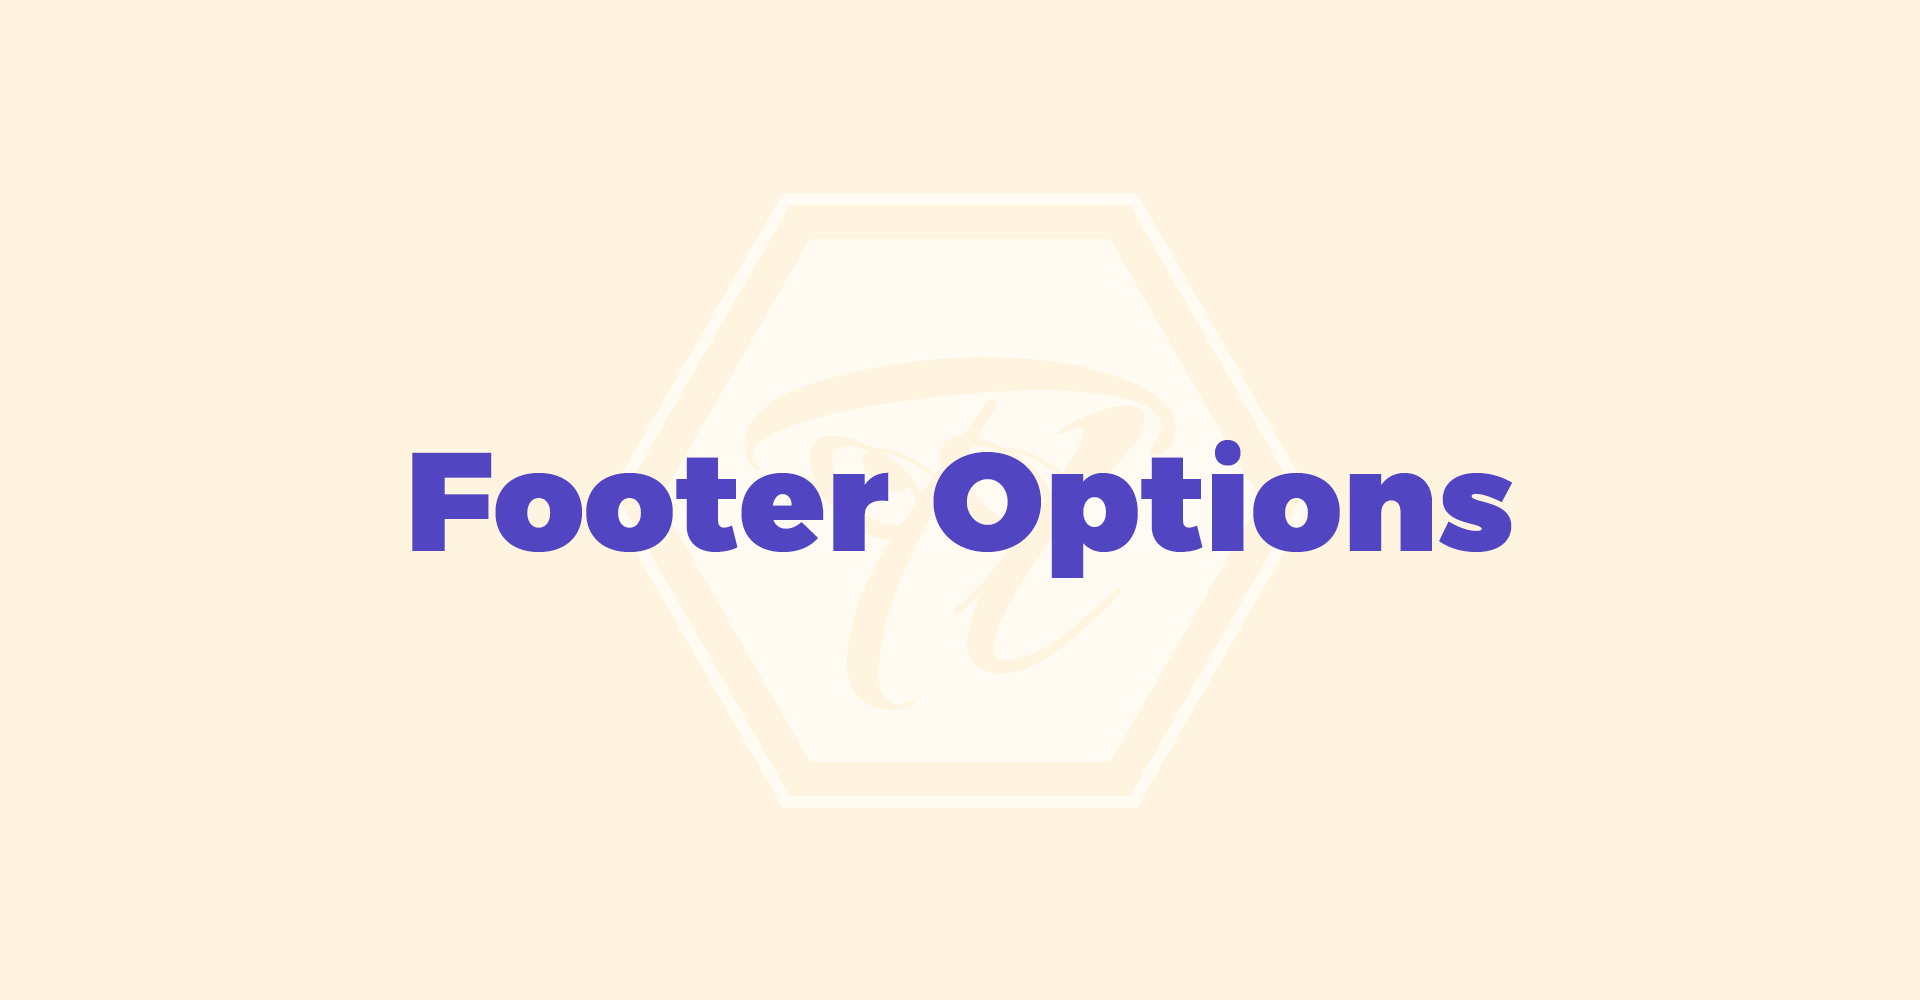 footer_options 1 1 2